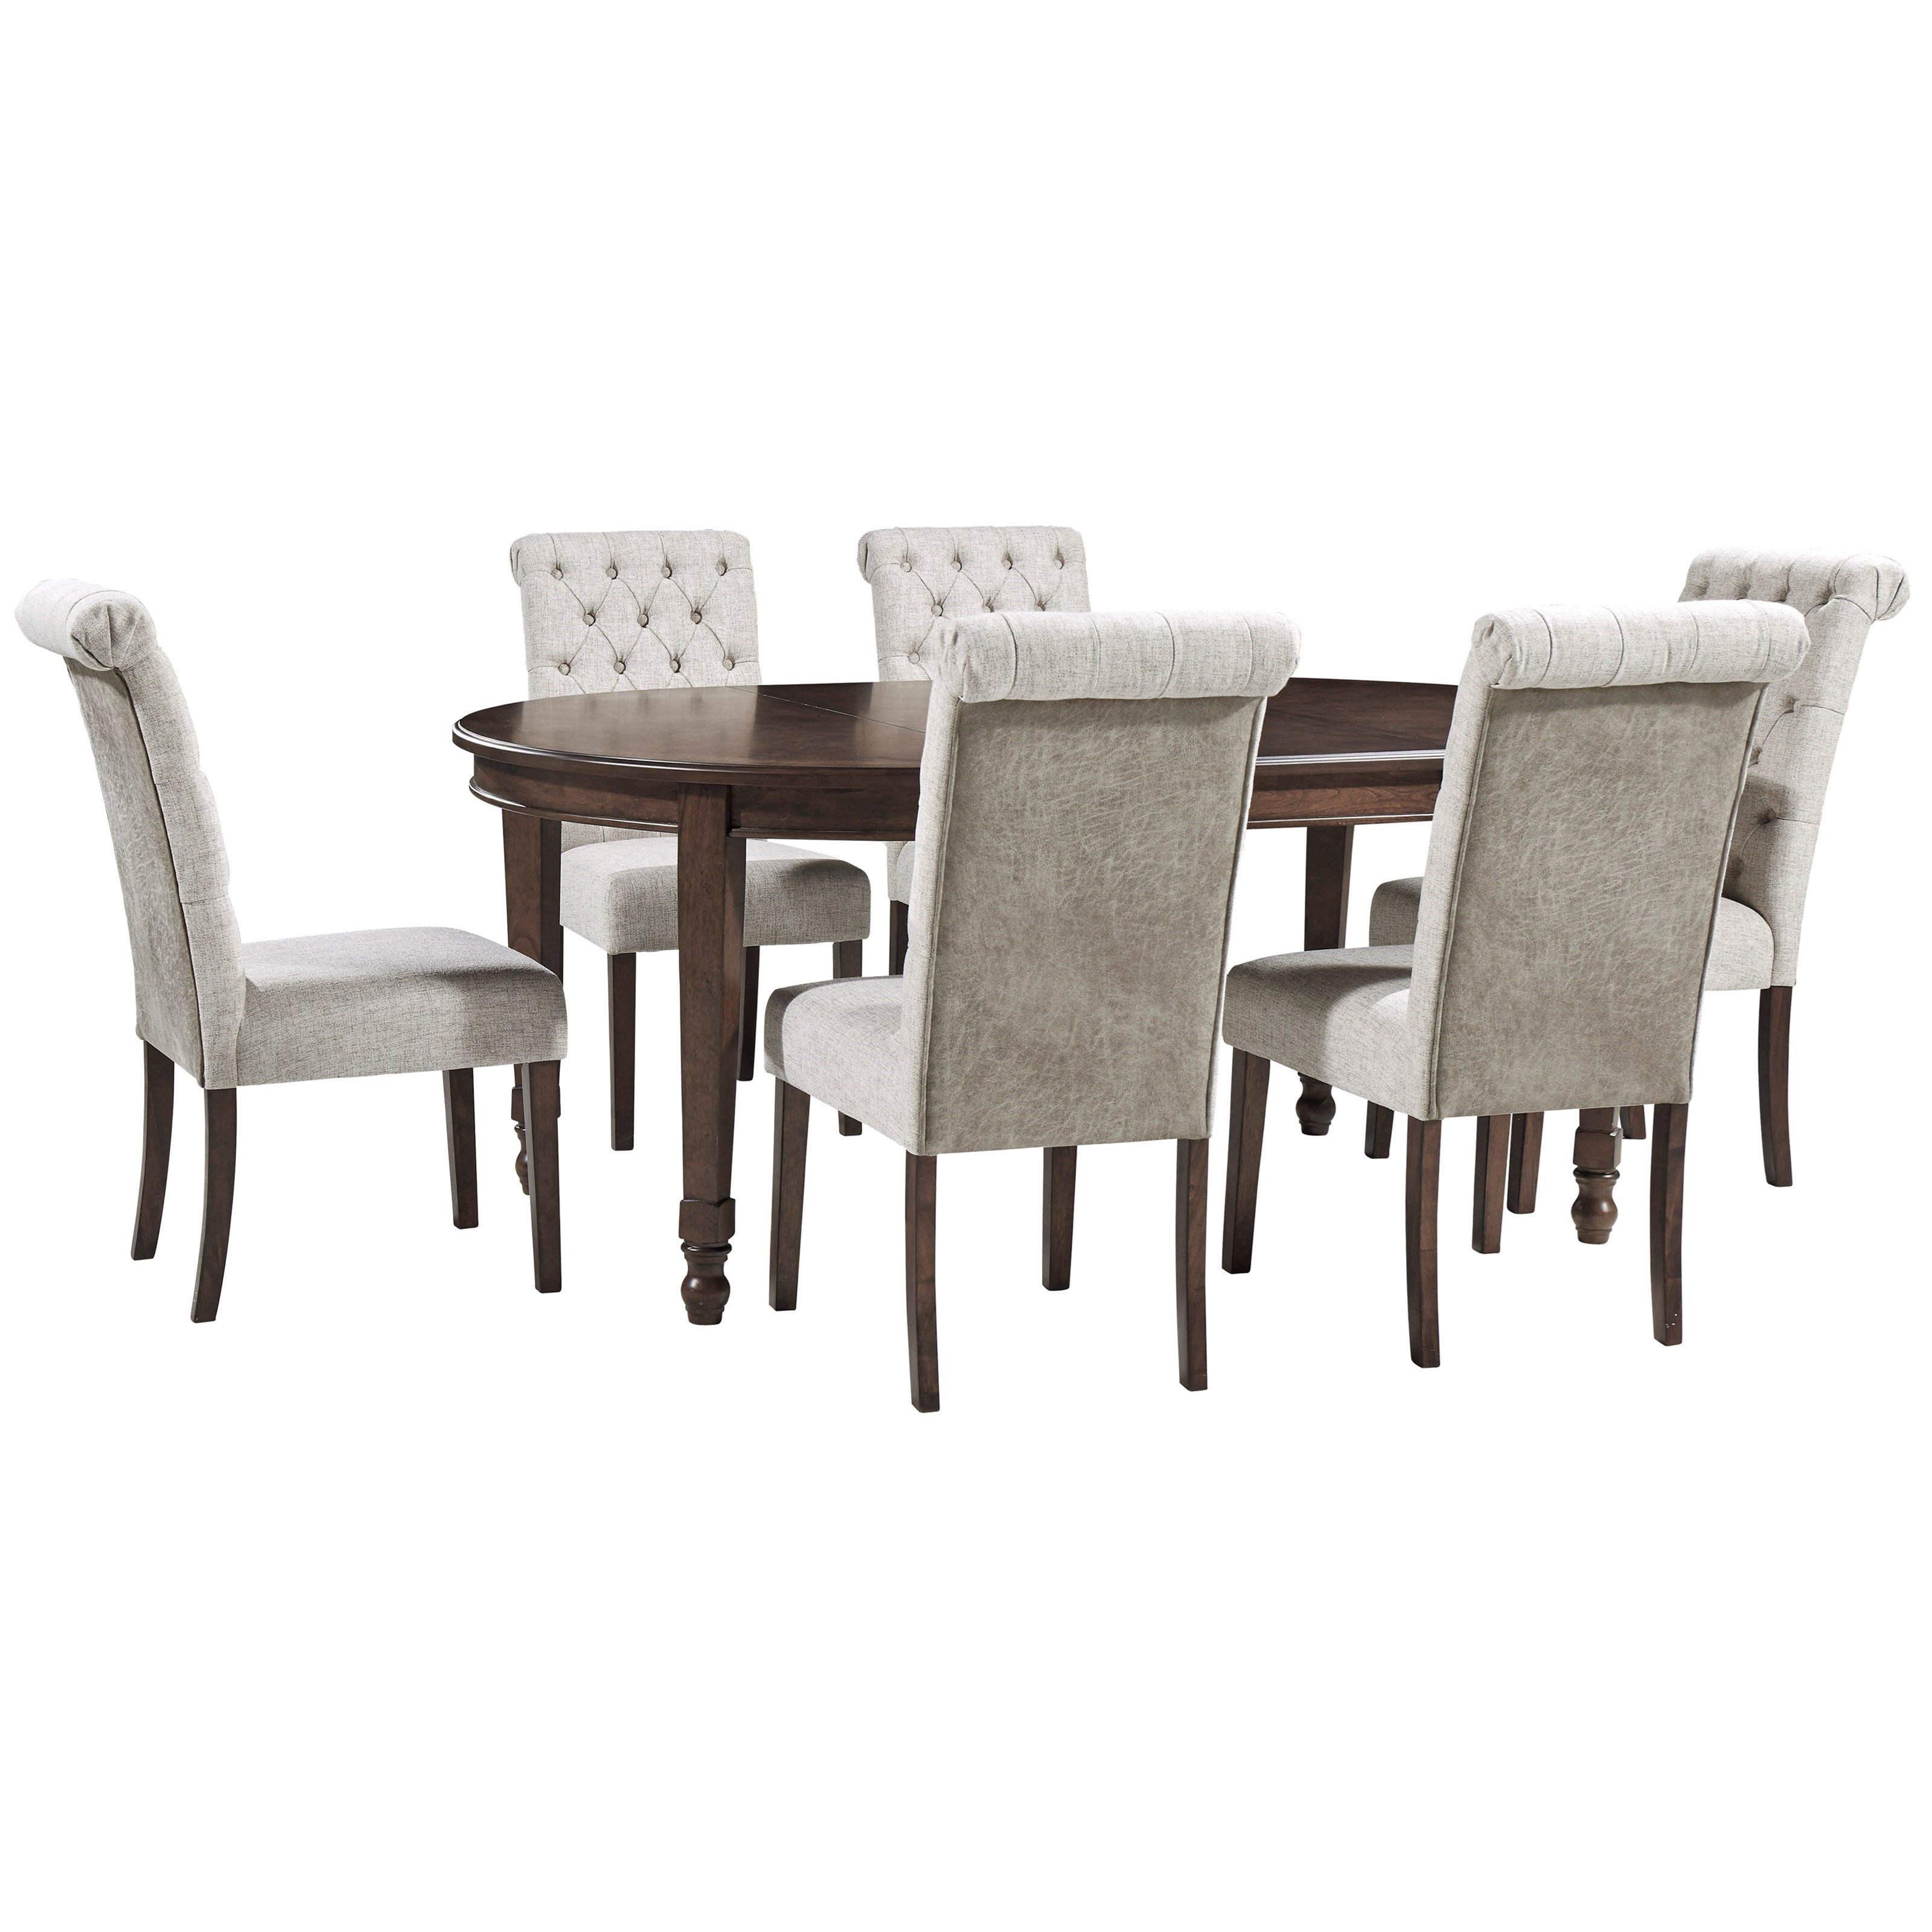 Adinton 7-Piece Table and Chair Set by Signature Design by Ashley at Carolina Direct